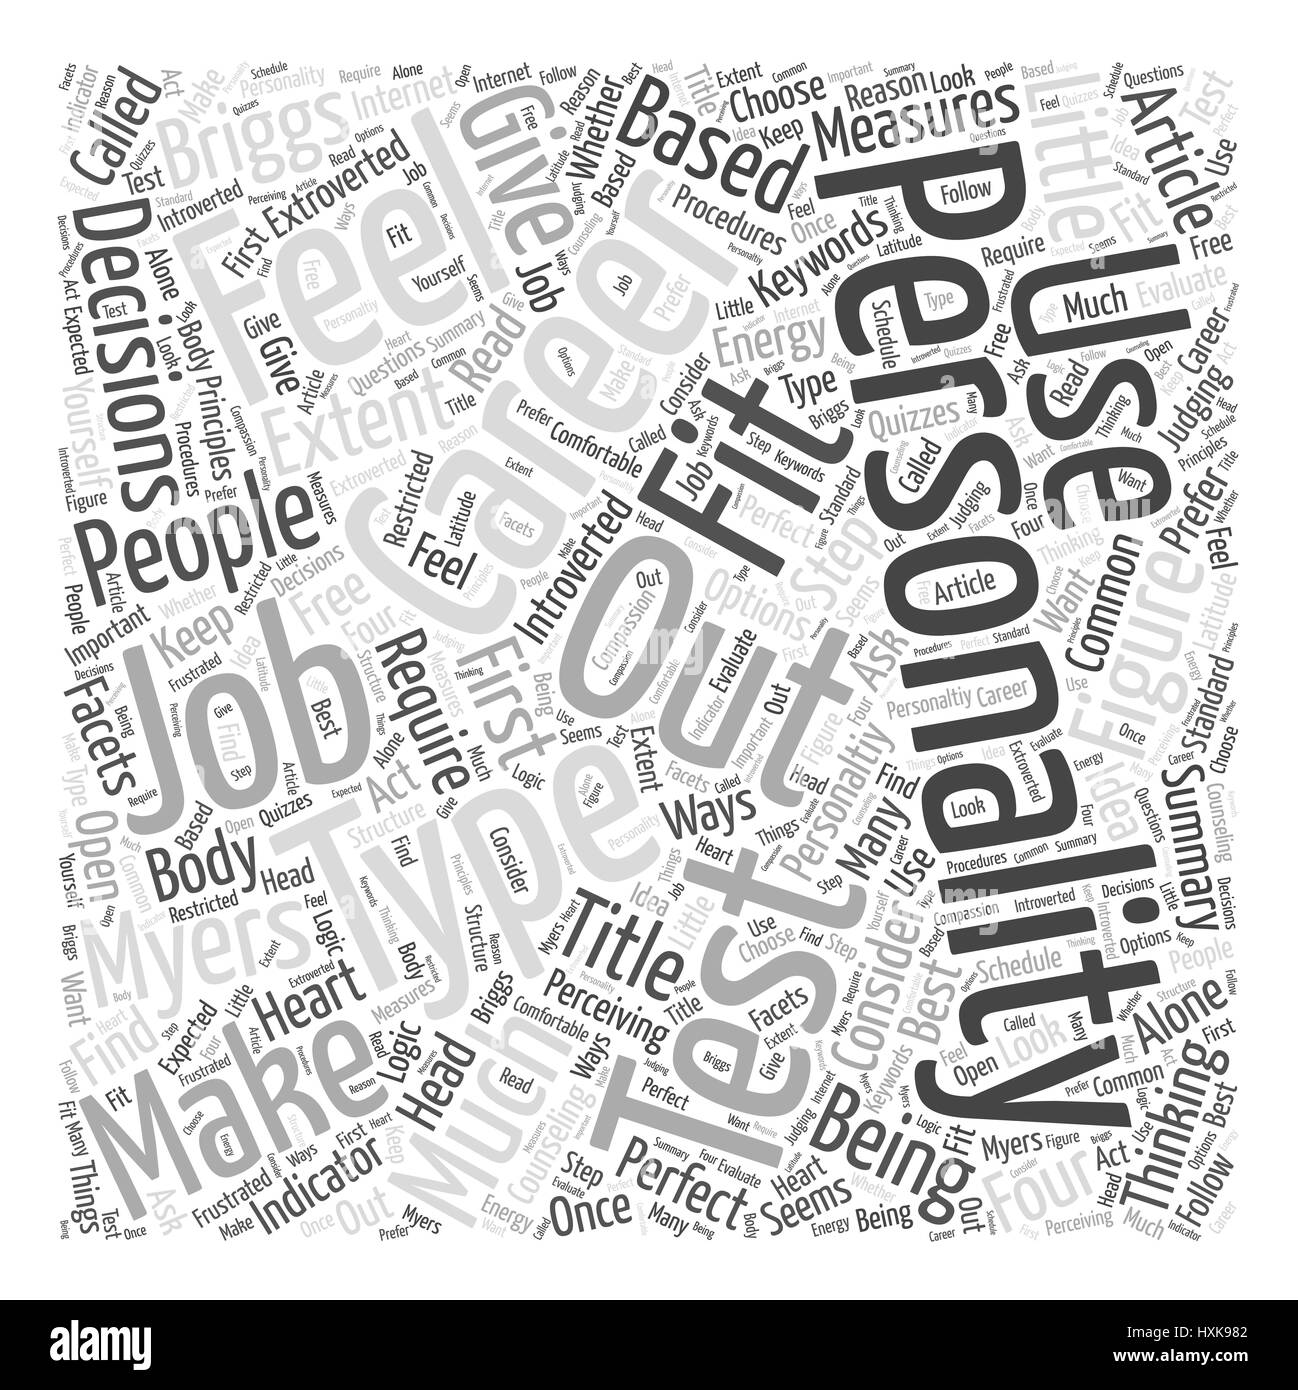 The Perfect Career for Your Personality Word Cloud Concept - Stock Image